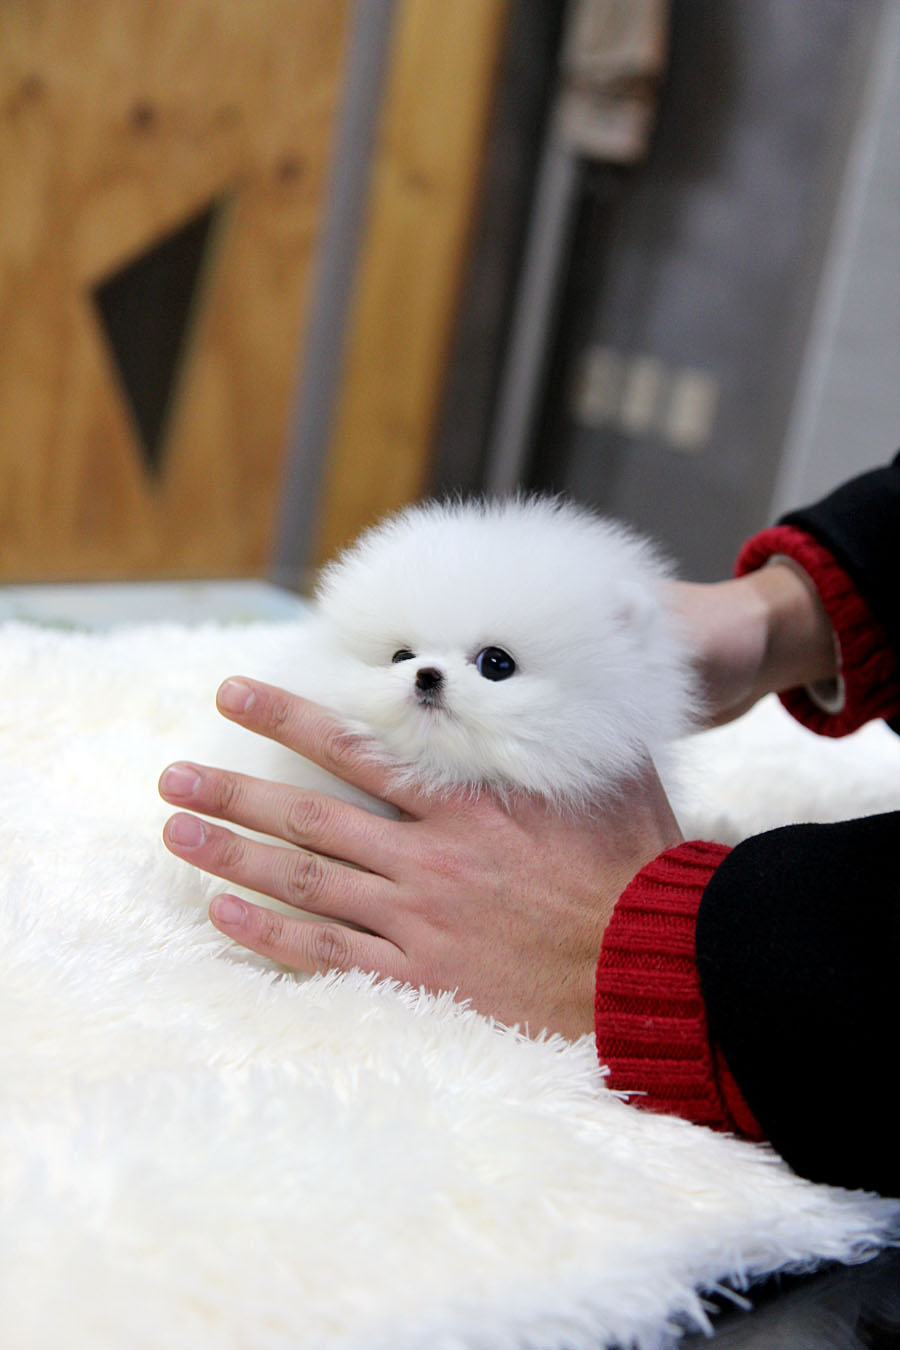 TEACUP PUPPY: ☆Teacup puppy for sale☆ White teacup pomeranian Addel :)